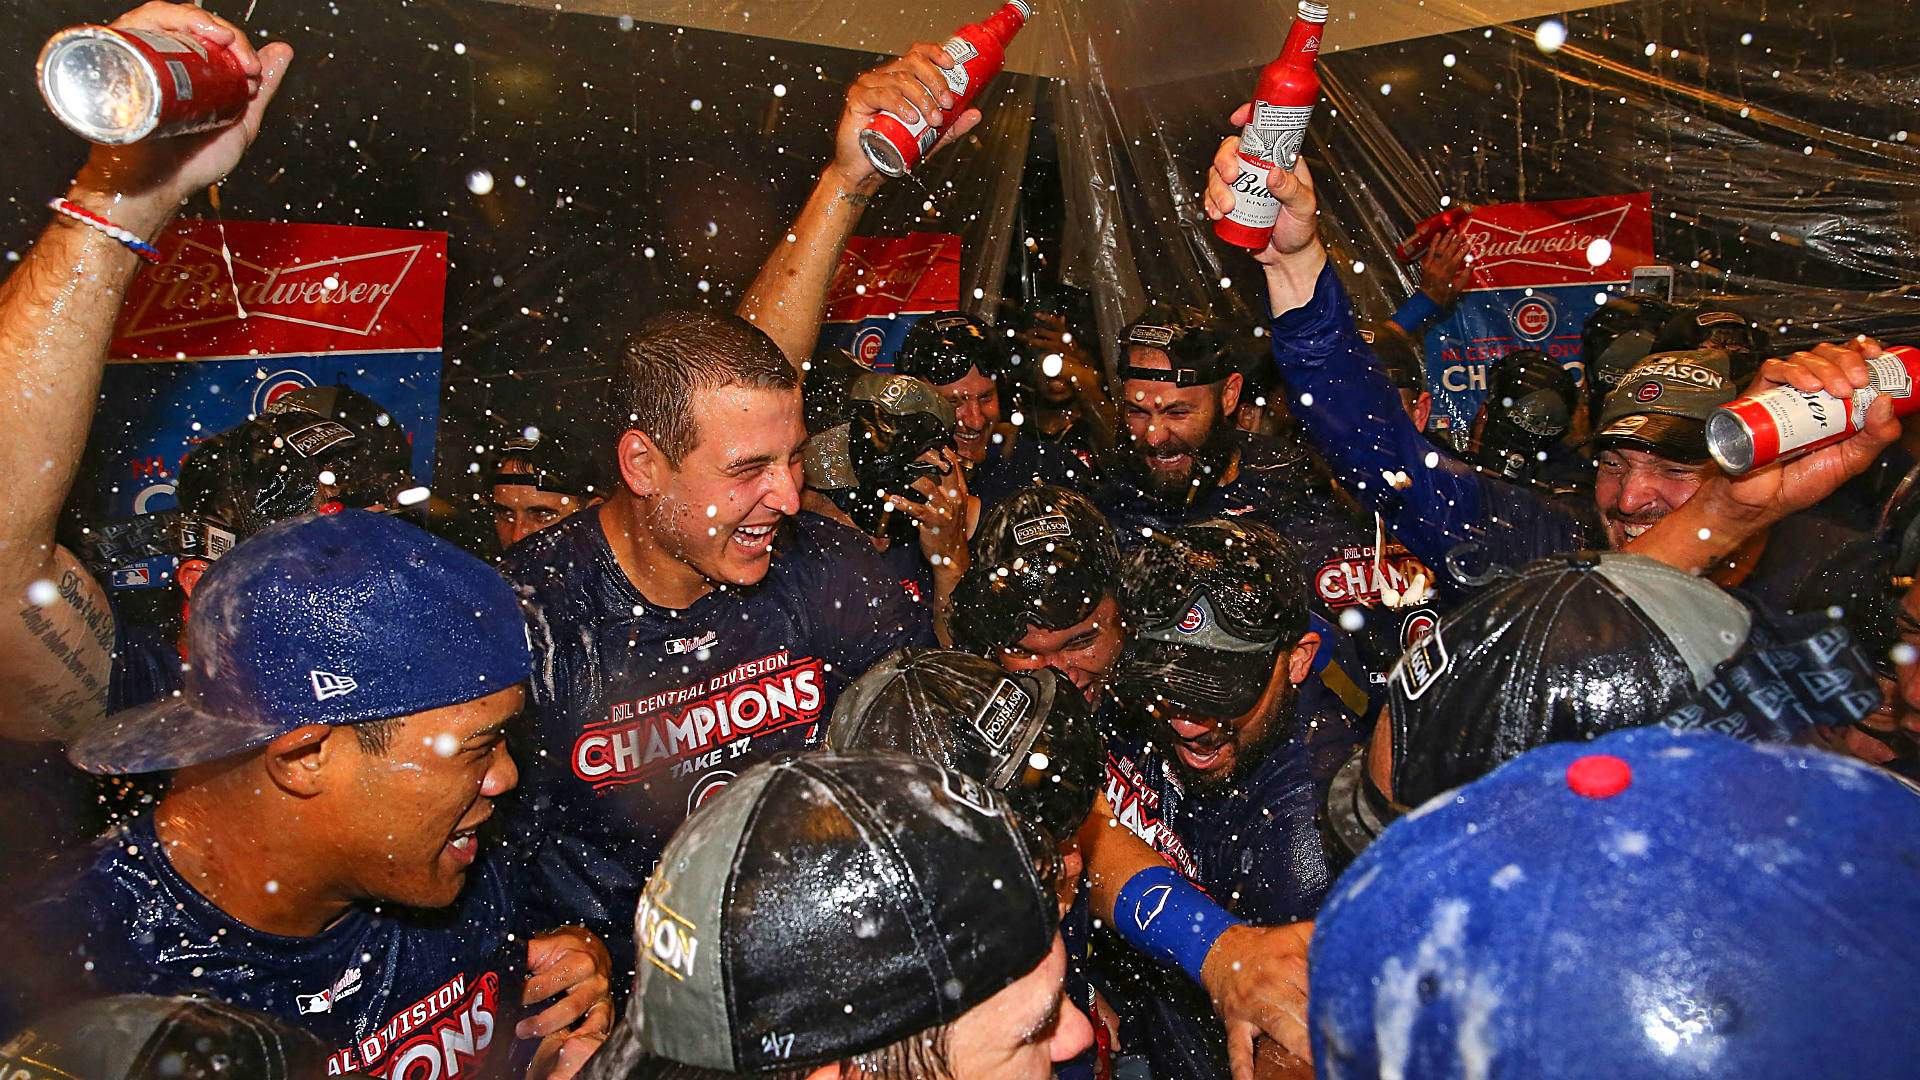 Minnesota Twins somehow headed to playoffs one year after 100-loss season